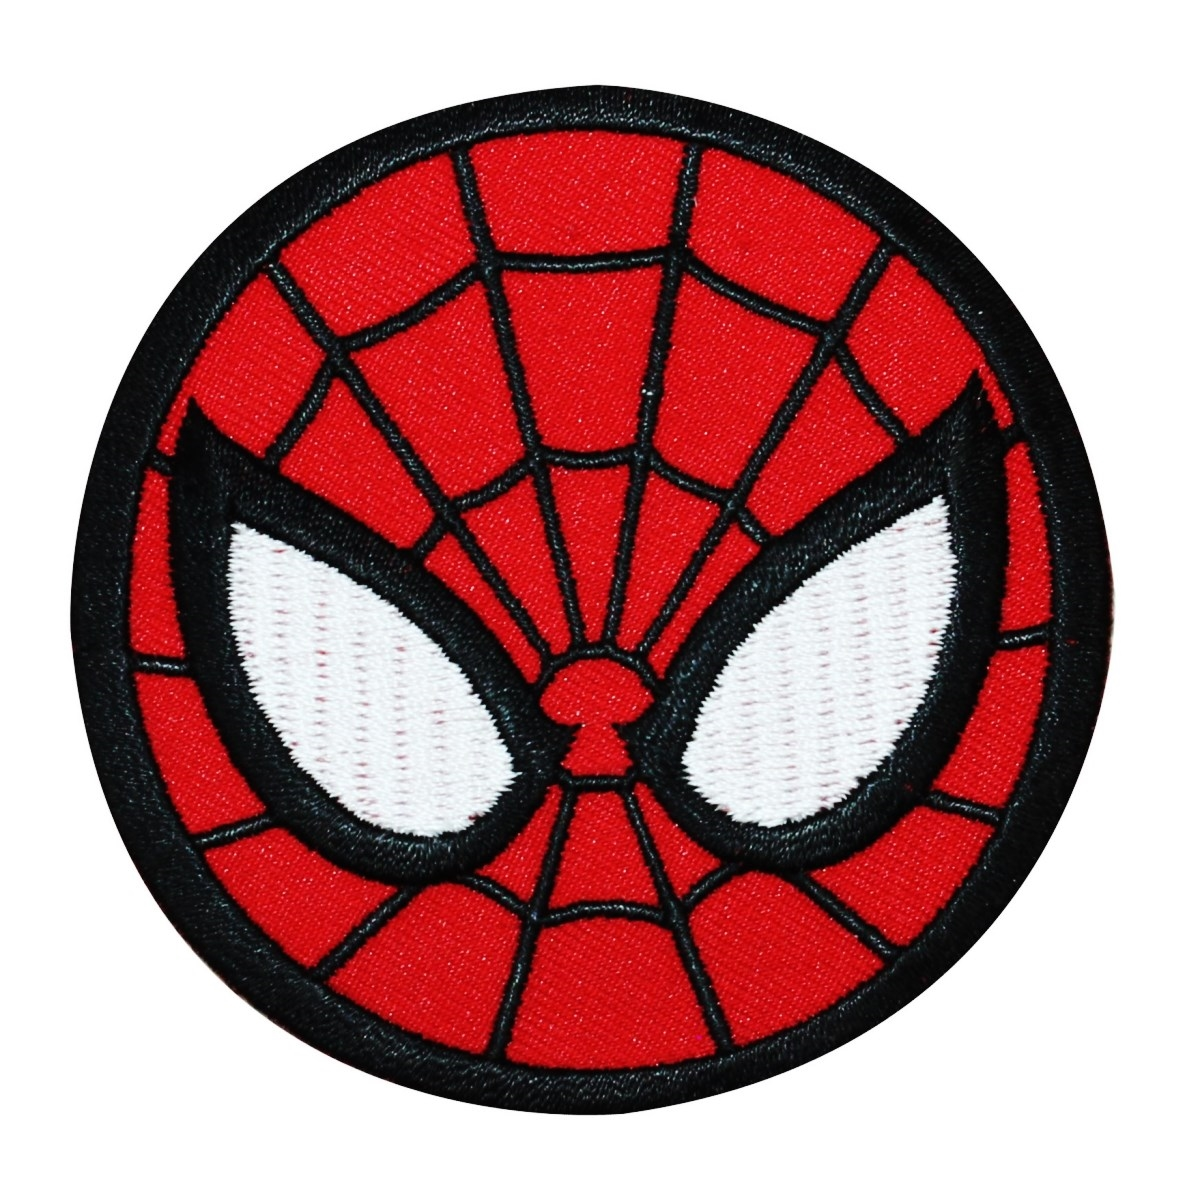 Spider-Man Logo Iron-On Patch Marvel Comic DIY Superhero Outfit Apparel Applique